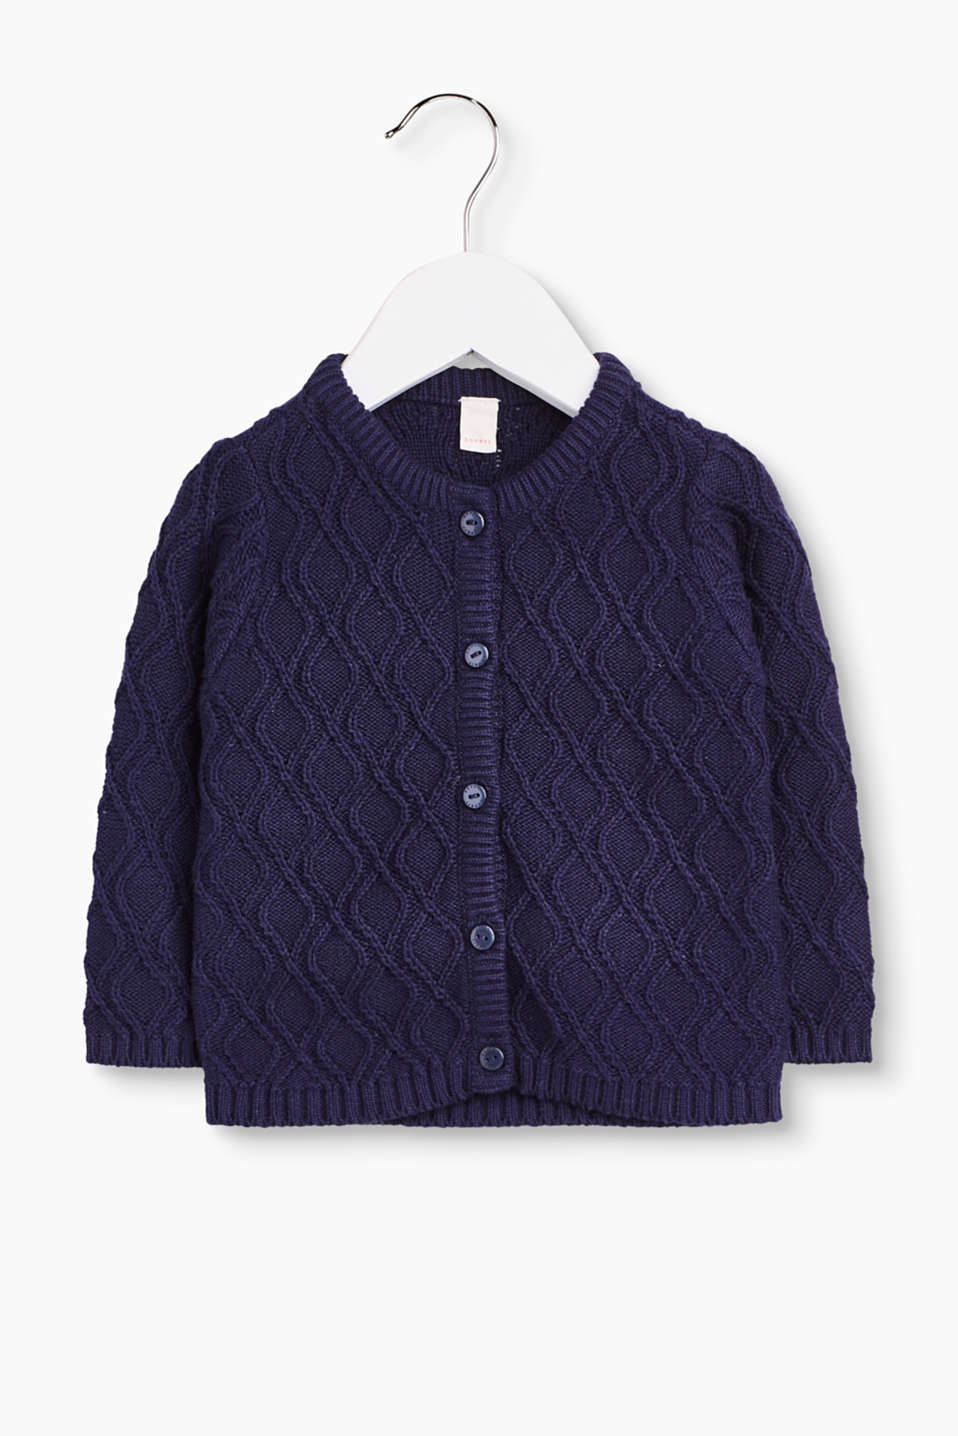 This beautifully shaped knit cardigan in 100% cotton with button placket perfectly rounds off any outfit worn by little ones